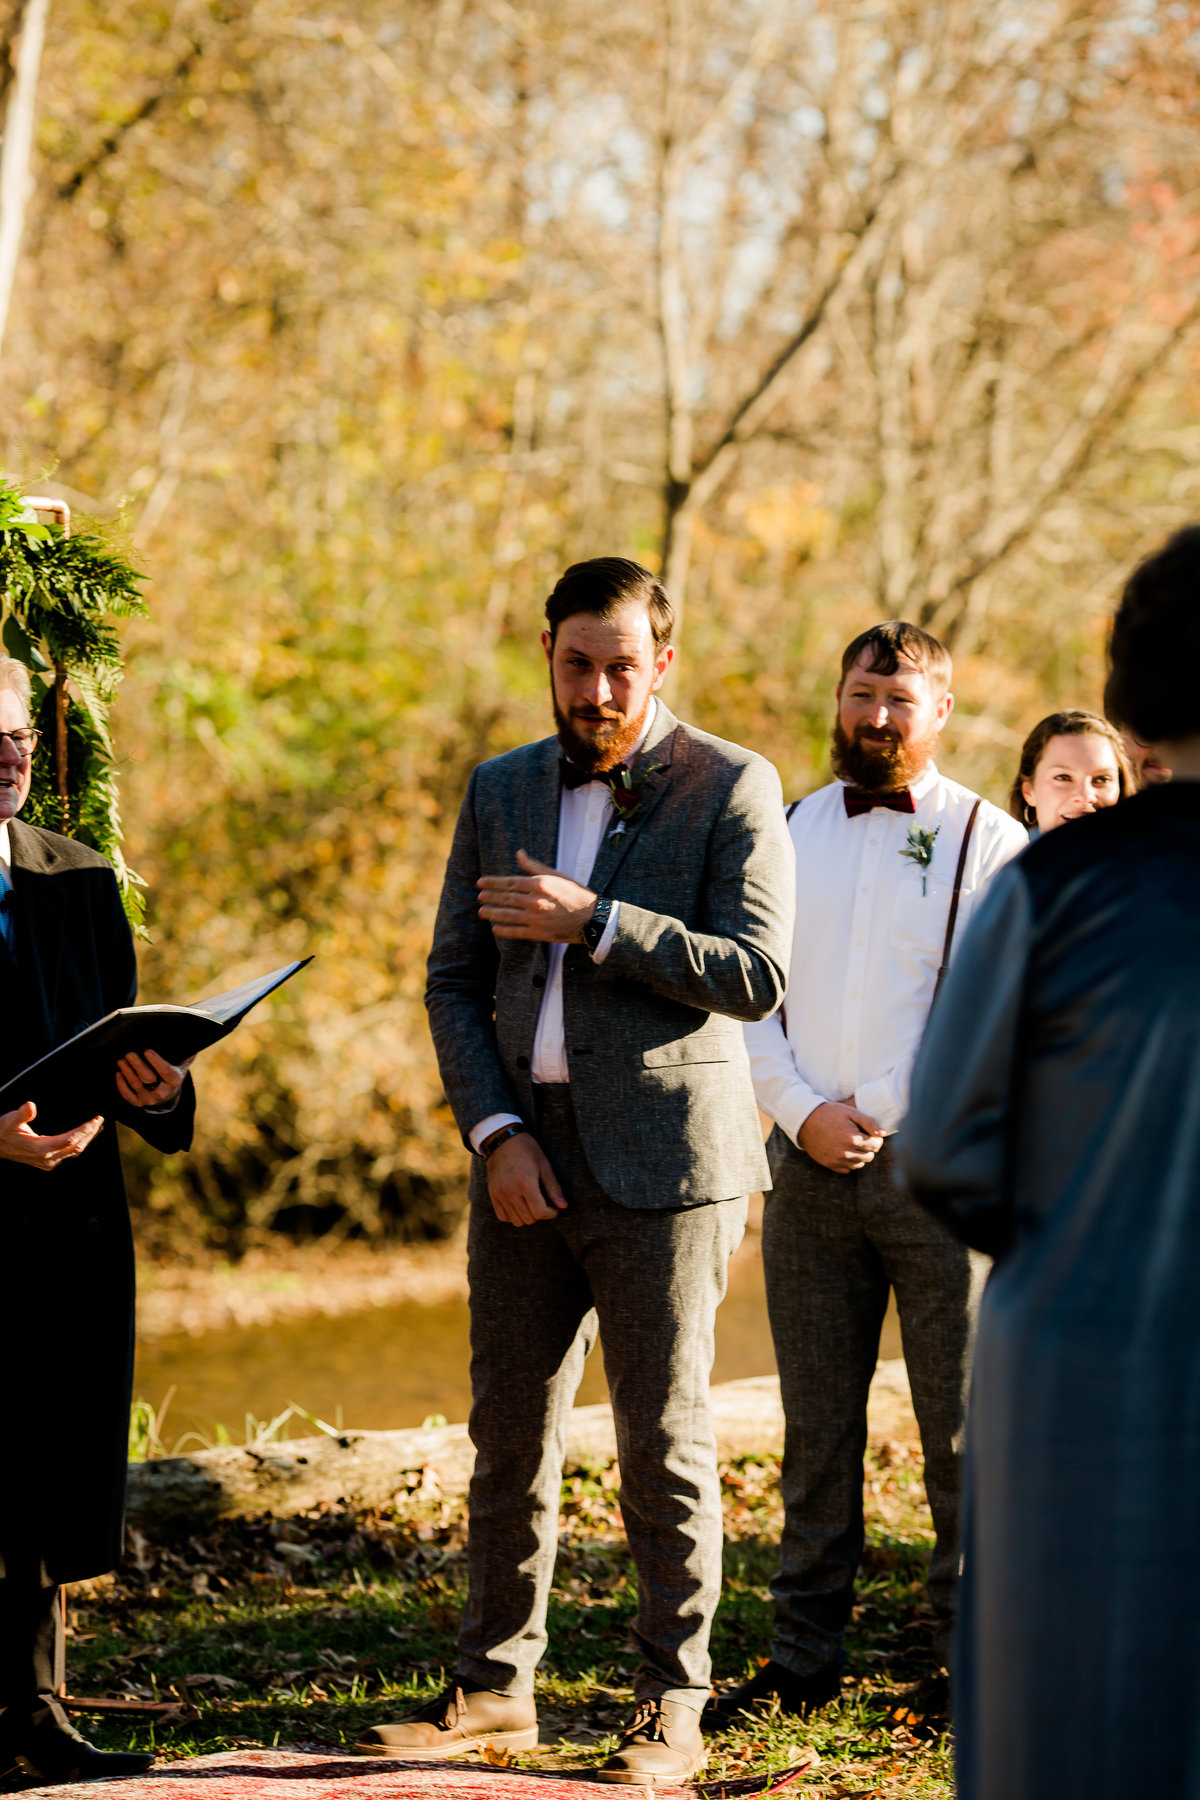 Cactus Creek Barn - Dickson Wedding - Dickson TN - Outdoor Weddings - Outdoor Wedding - Nashville Wedding - Nashville Weddings - Nashville Wedding Photographer - Nashville Wedding Photographers029